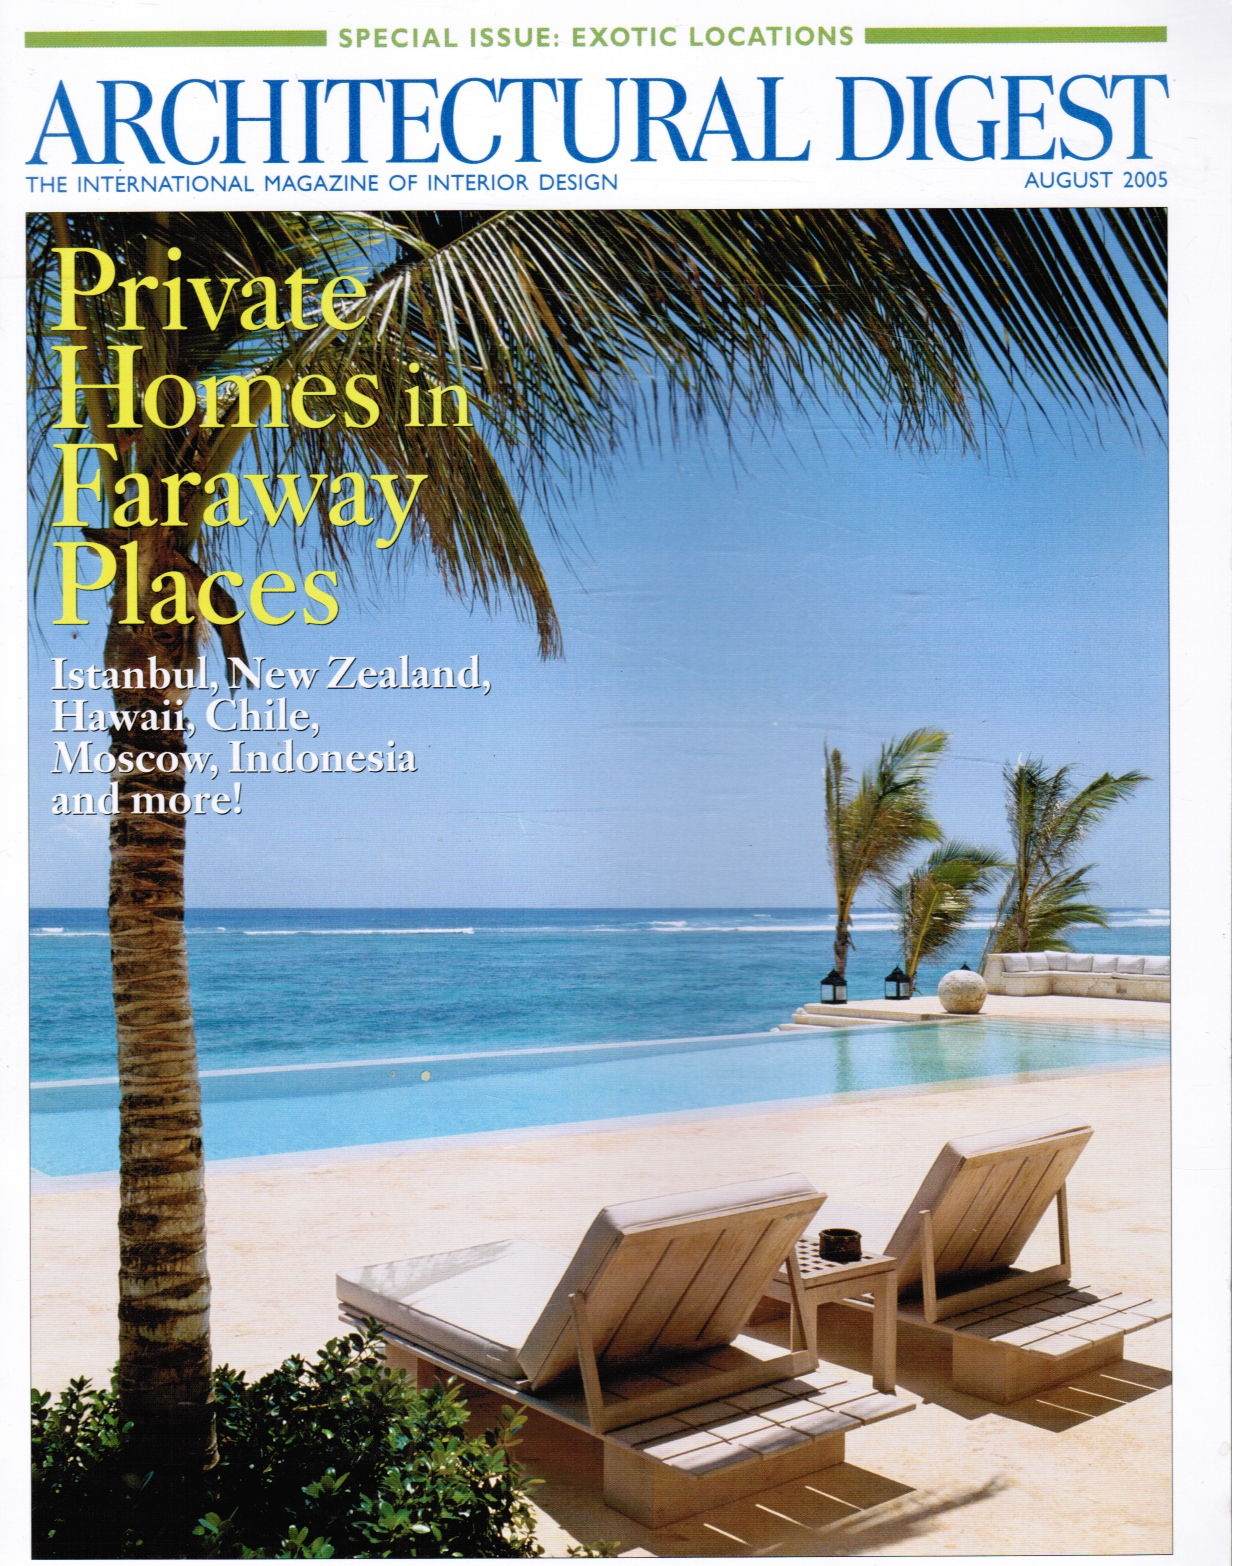 Image for Architectural Digest August 2005 Exotic Locations - Special Issue